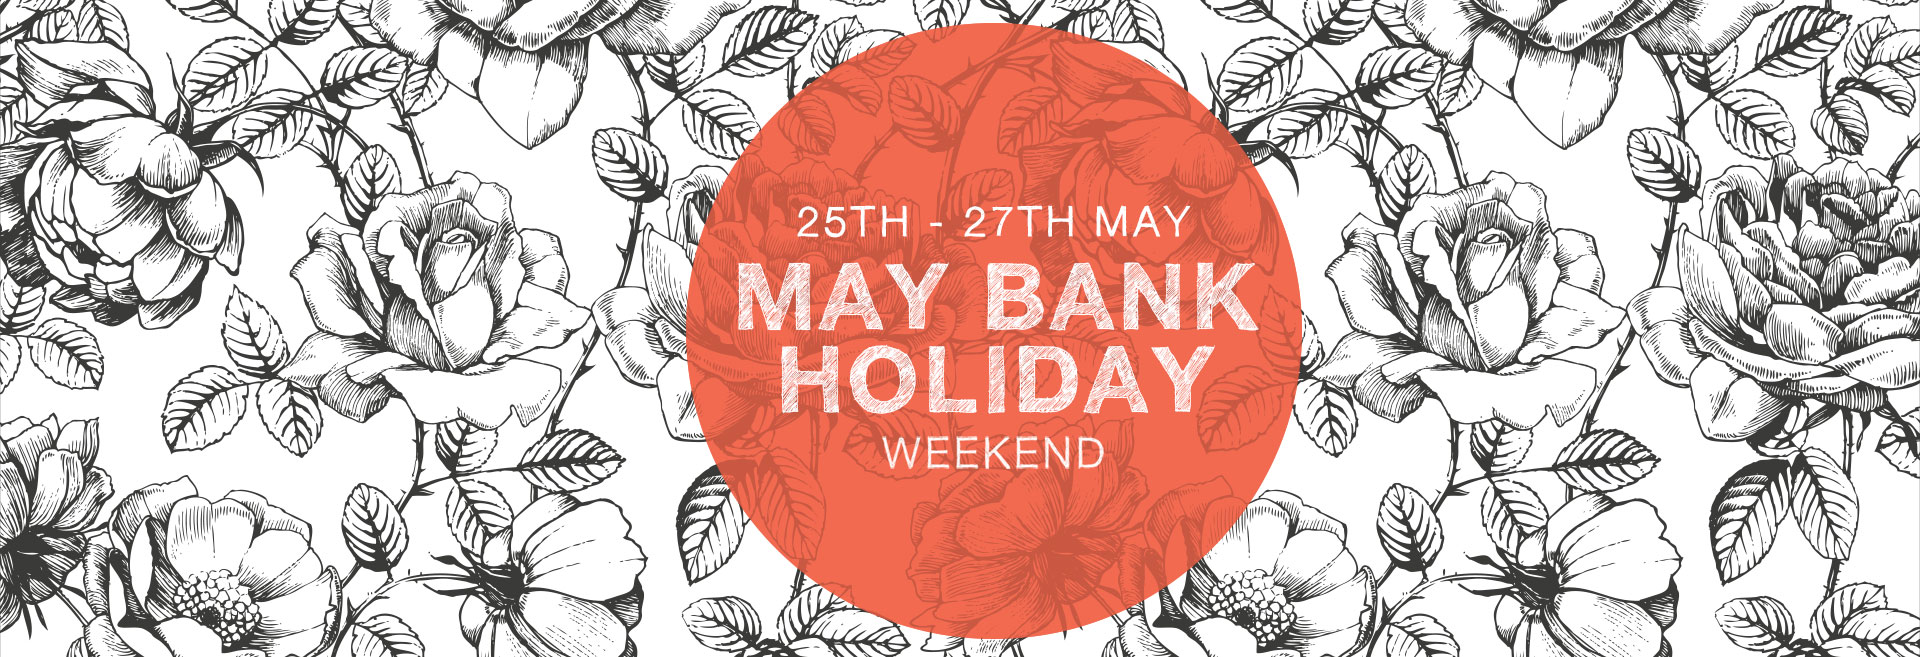 May Bank Holiday at The Builder's Arms